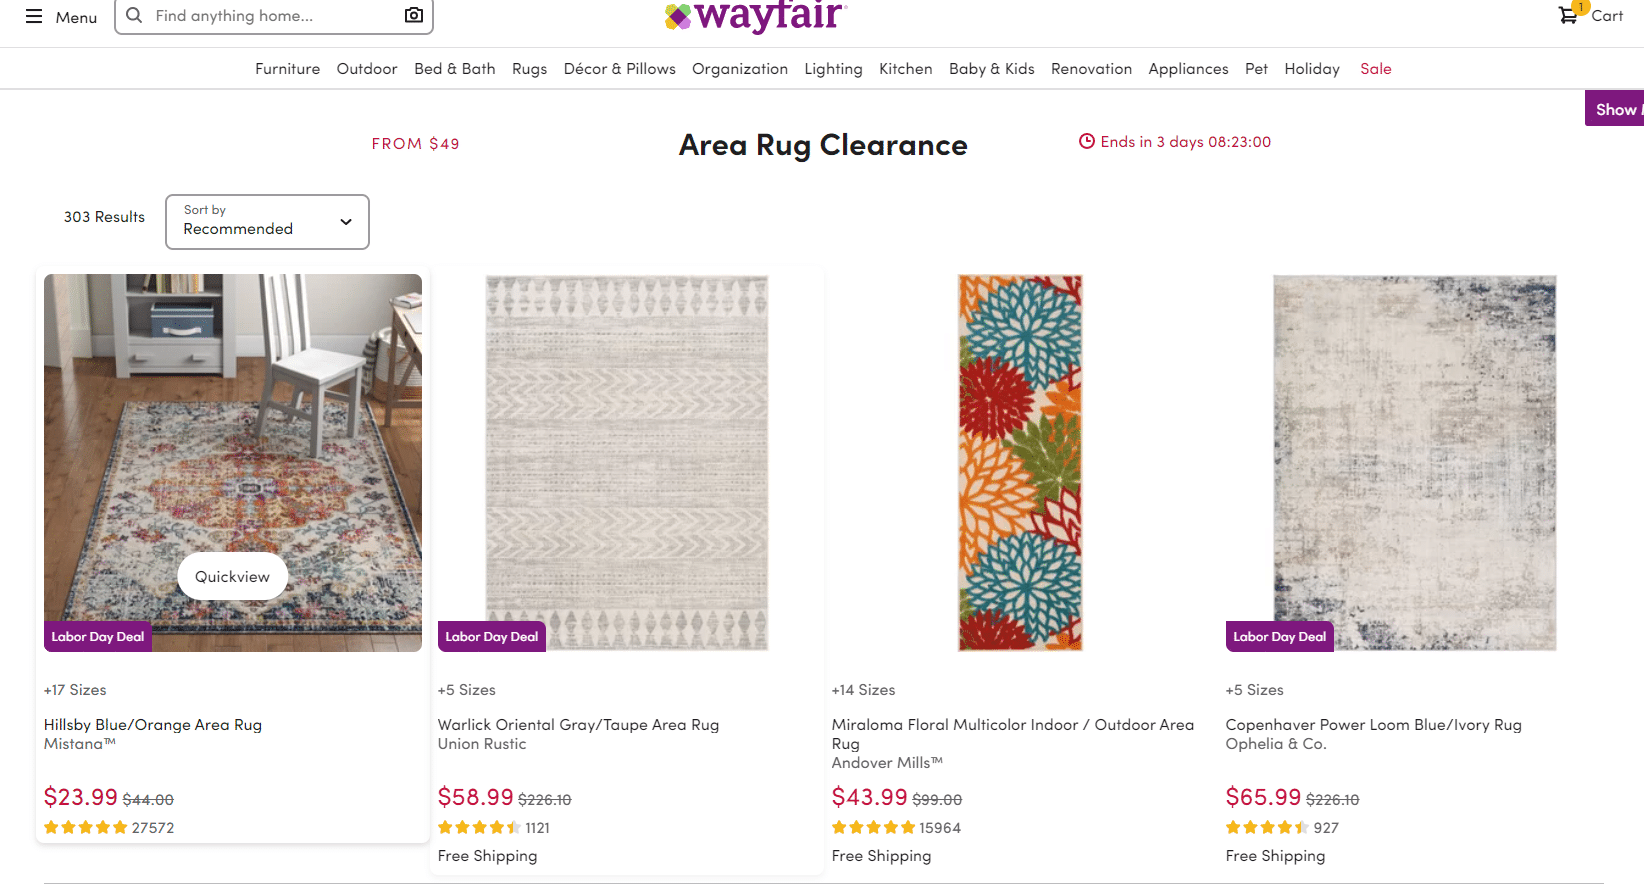 area rug clearance from $49